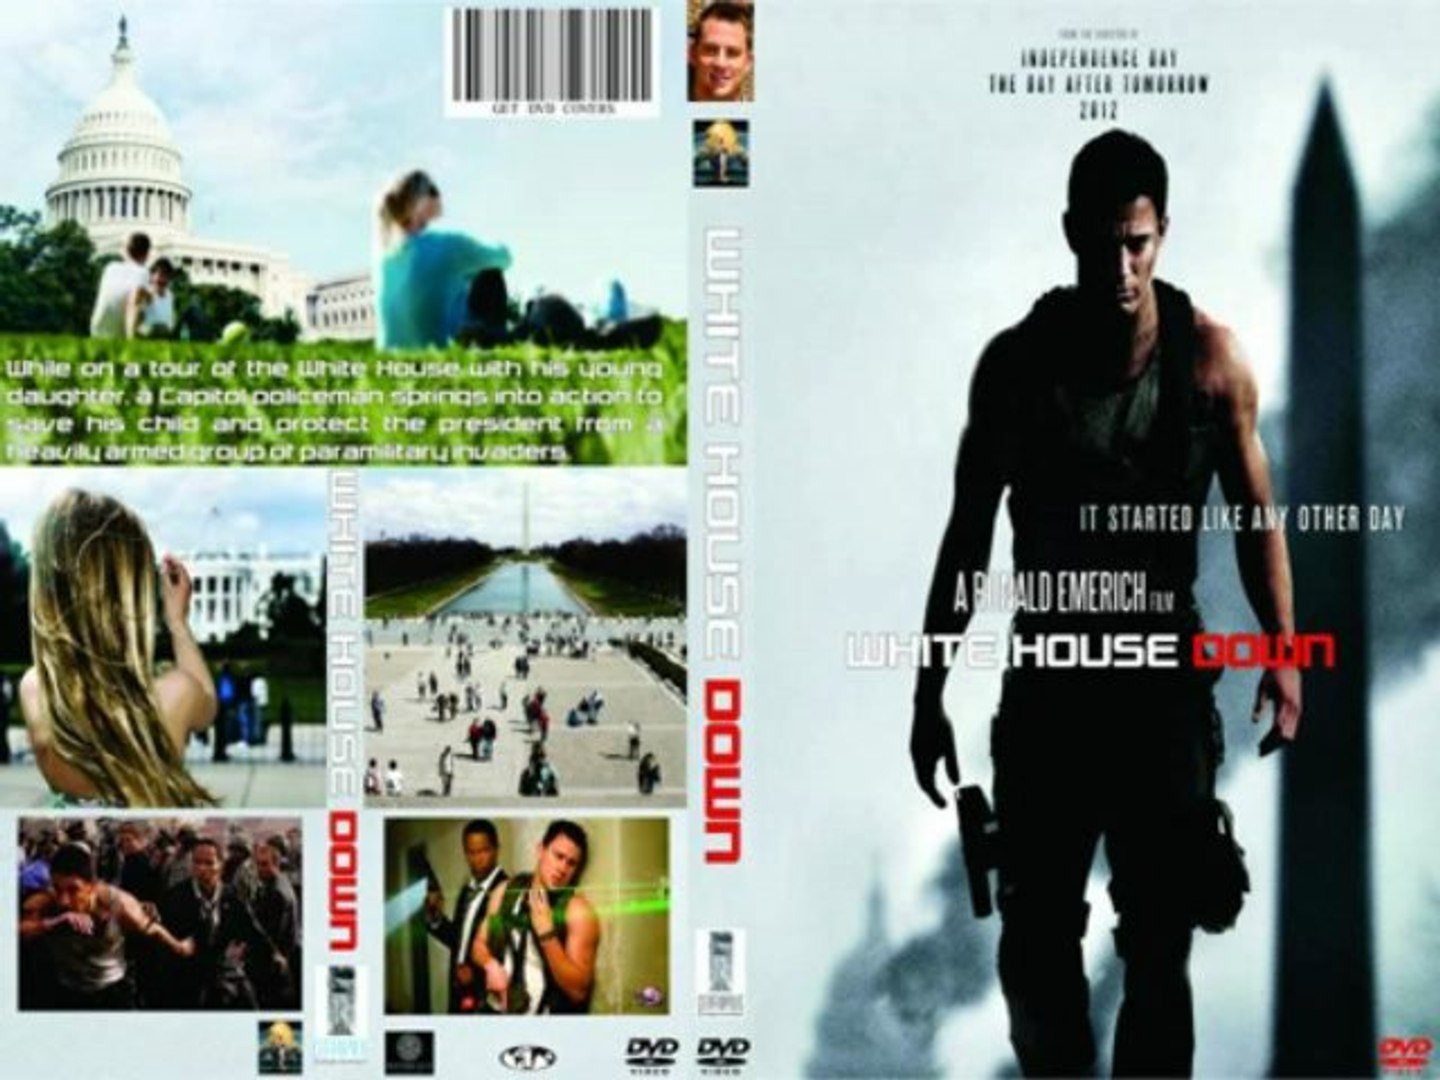 {@=}} Watch White House Down StreaMING Movie Online Movie Free Putlocker HD PCTV [streaming movie hd